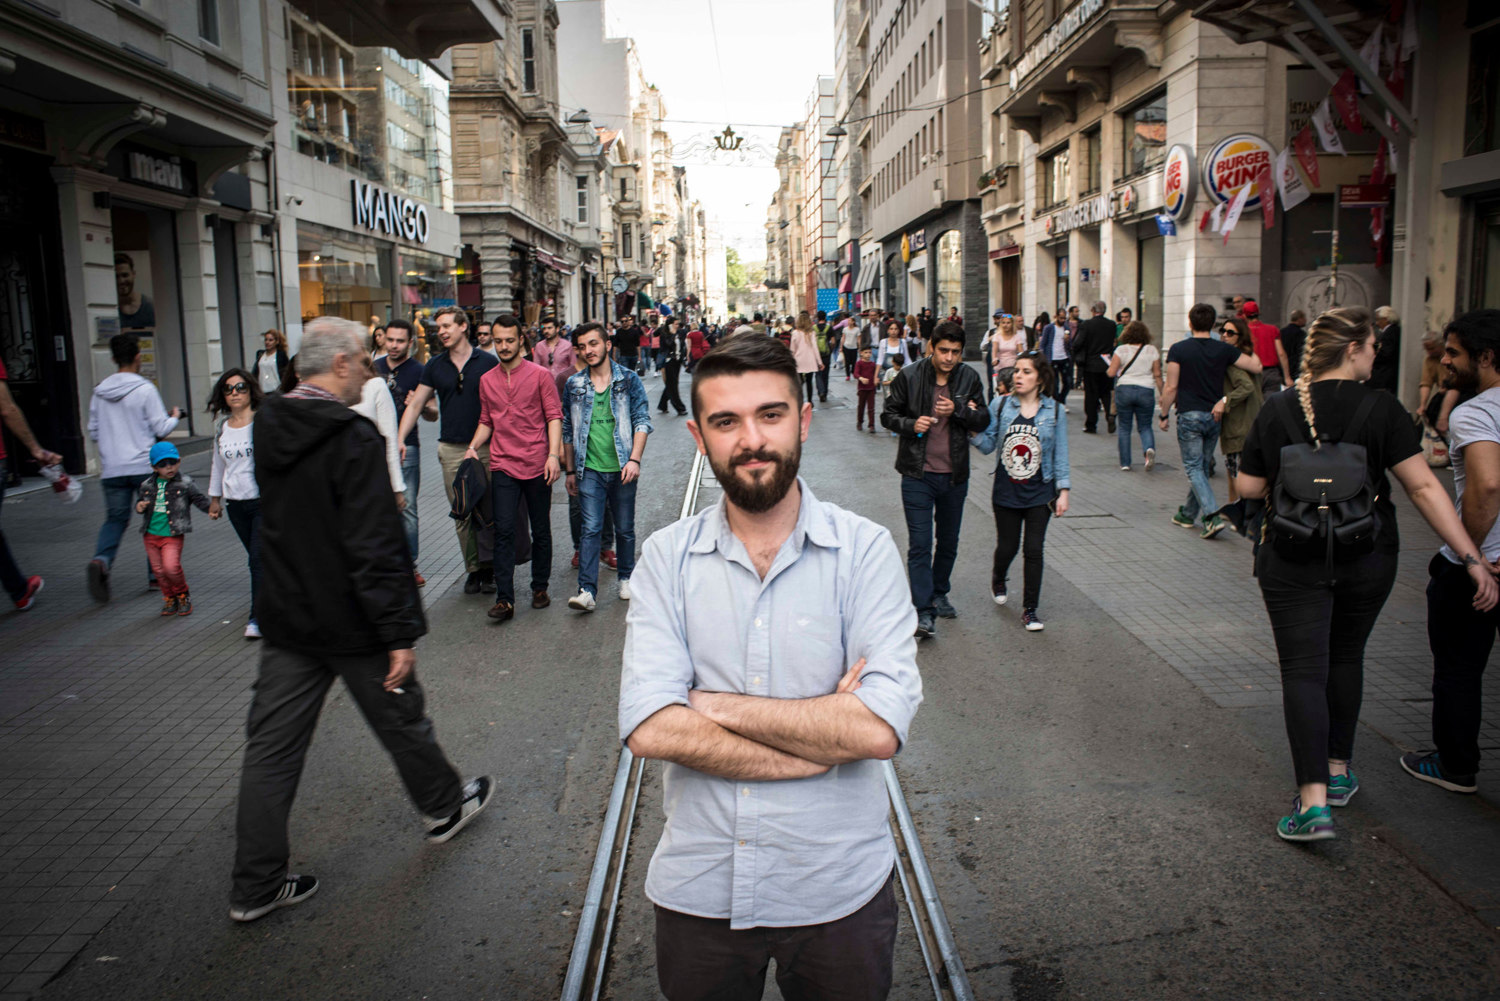 Engin Onder, Young Global Leader from Turkey. Photographed in Istanbul  on Istiklal Cadessi, the main walking street in the city on May 5th 2015 for TIME Magazine.